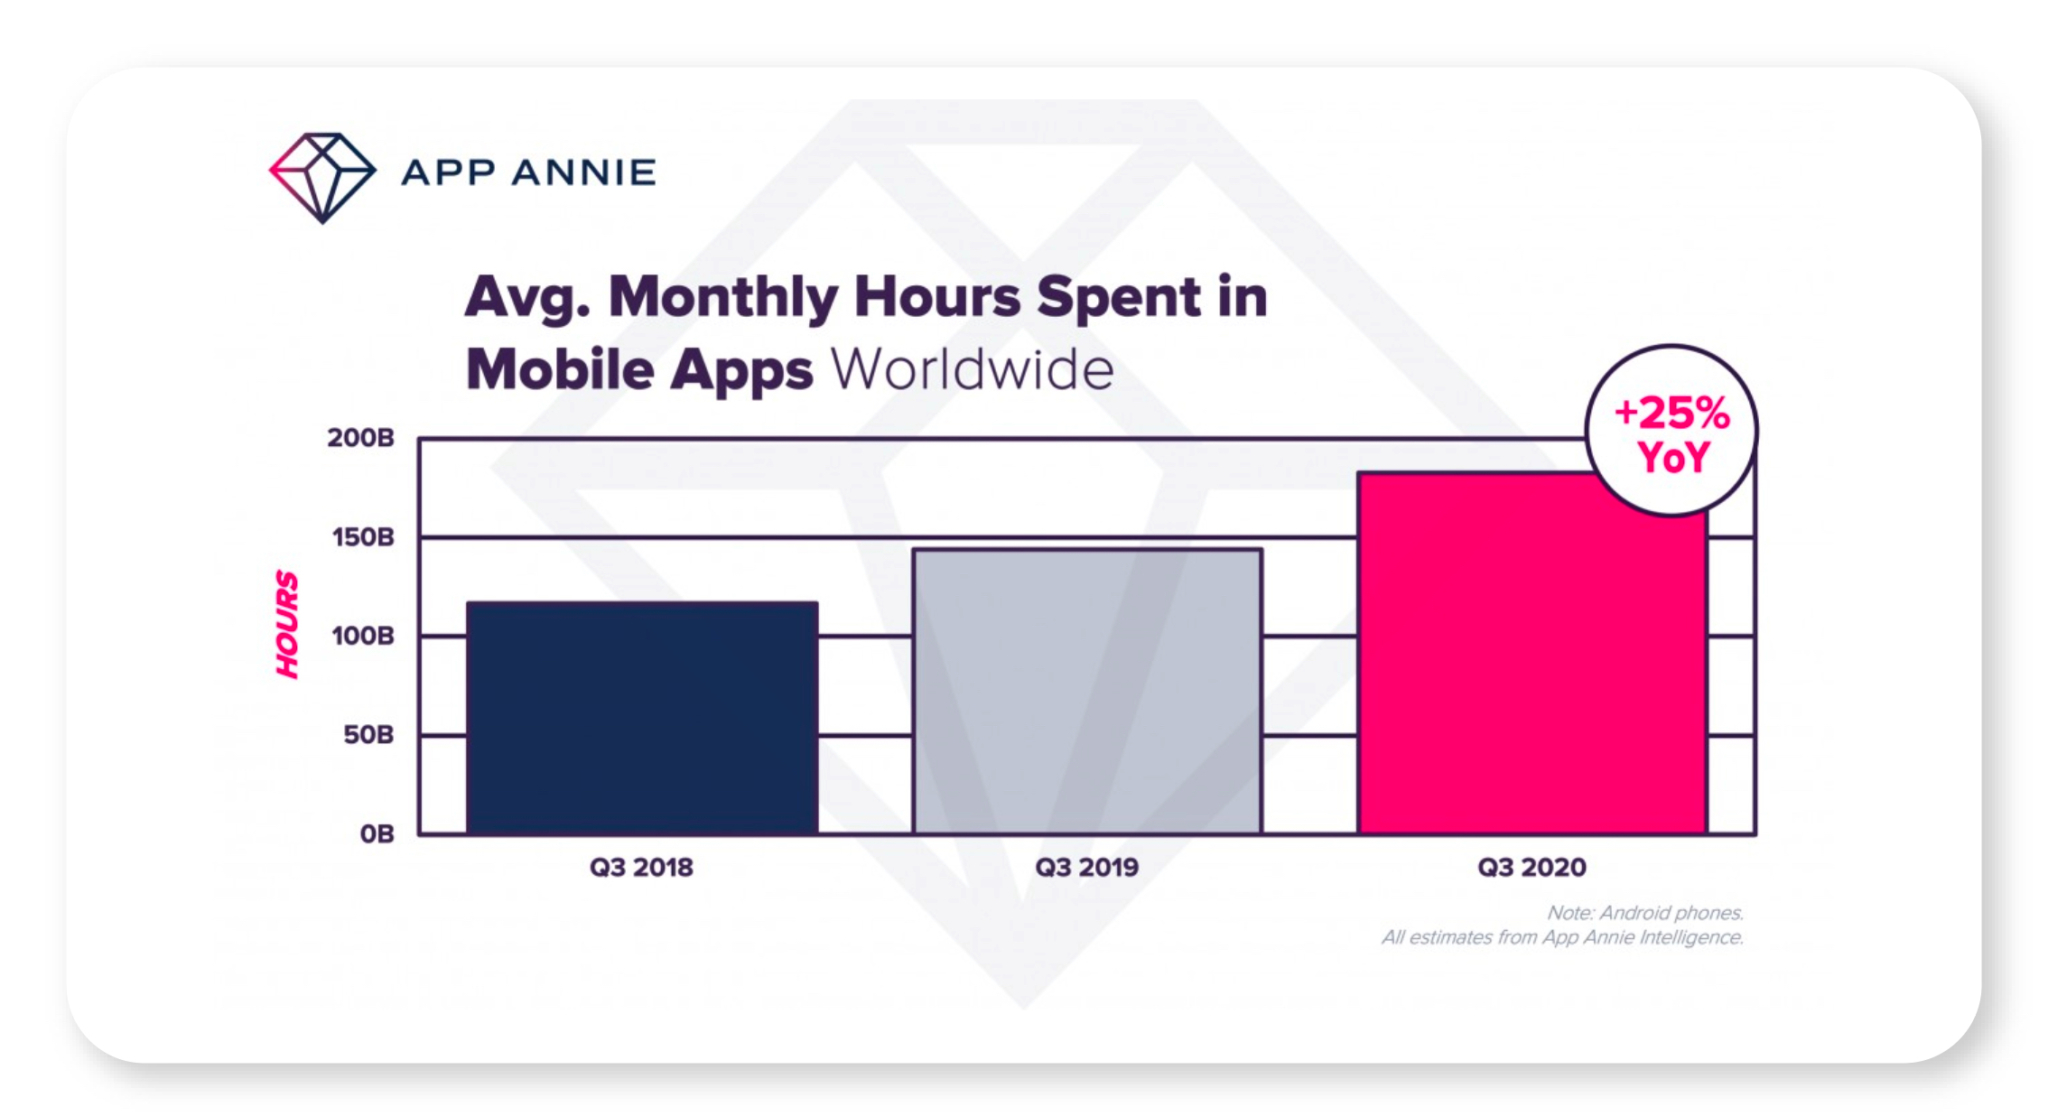 App Annie - Ave Monthly Hours Spent in Mobile Apps